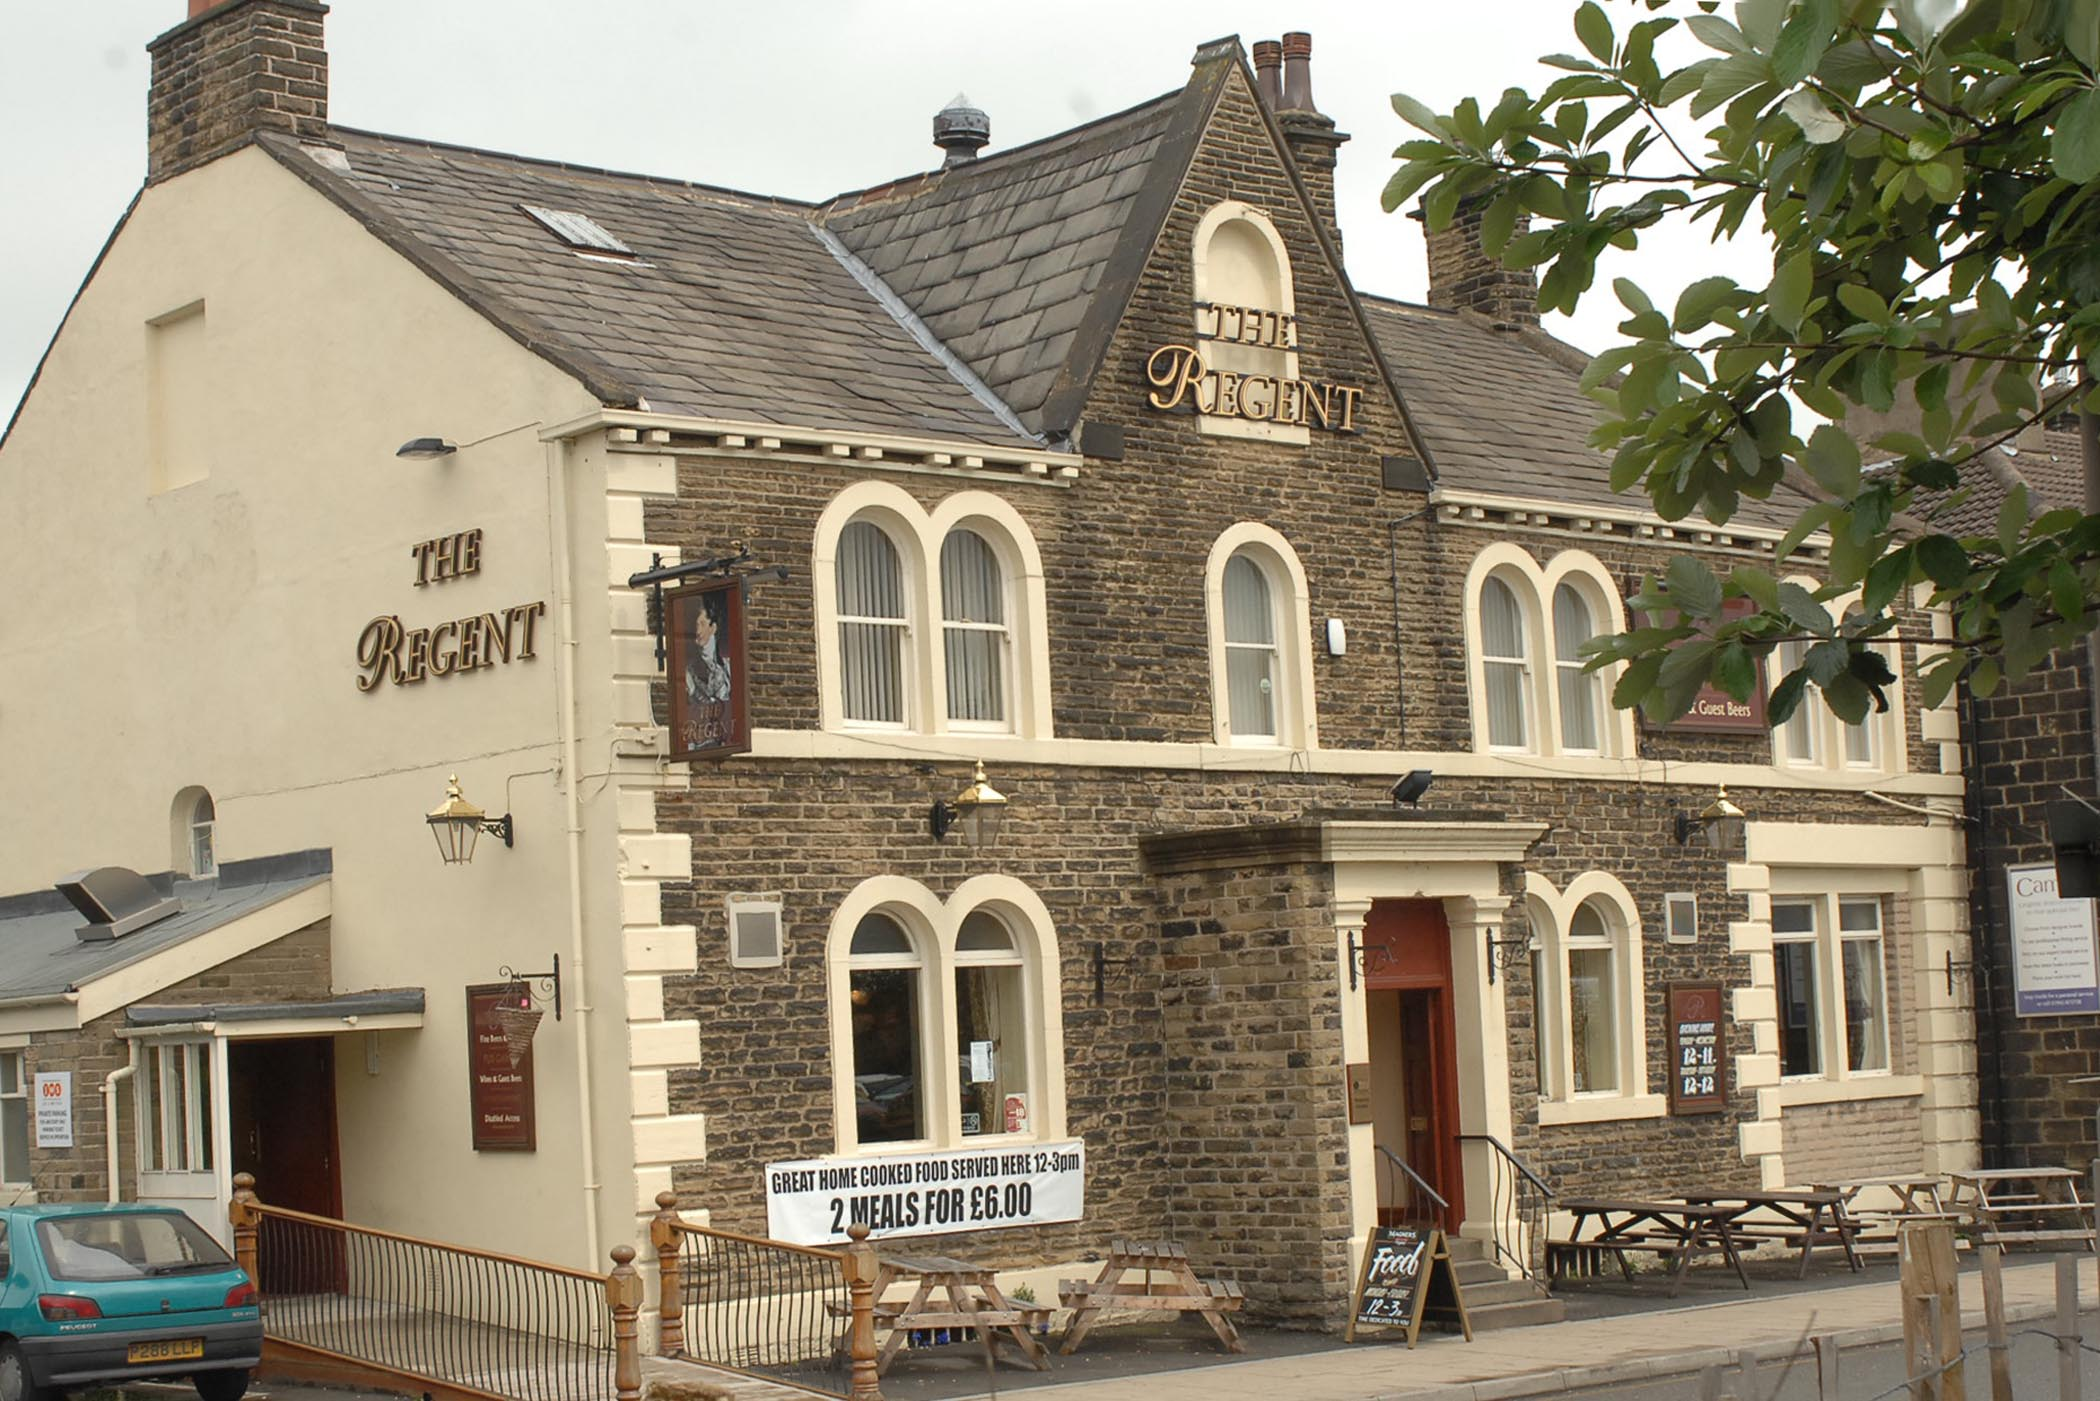 The Regent pub in Guiseley